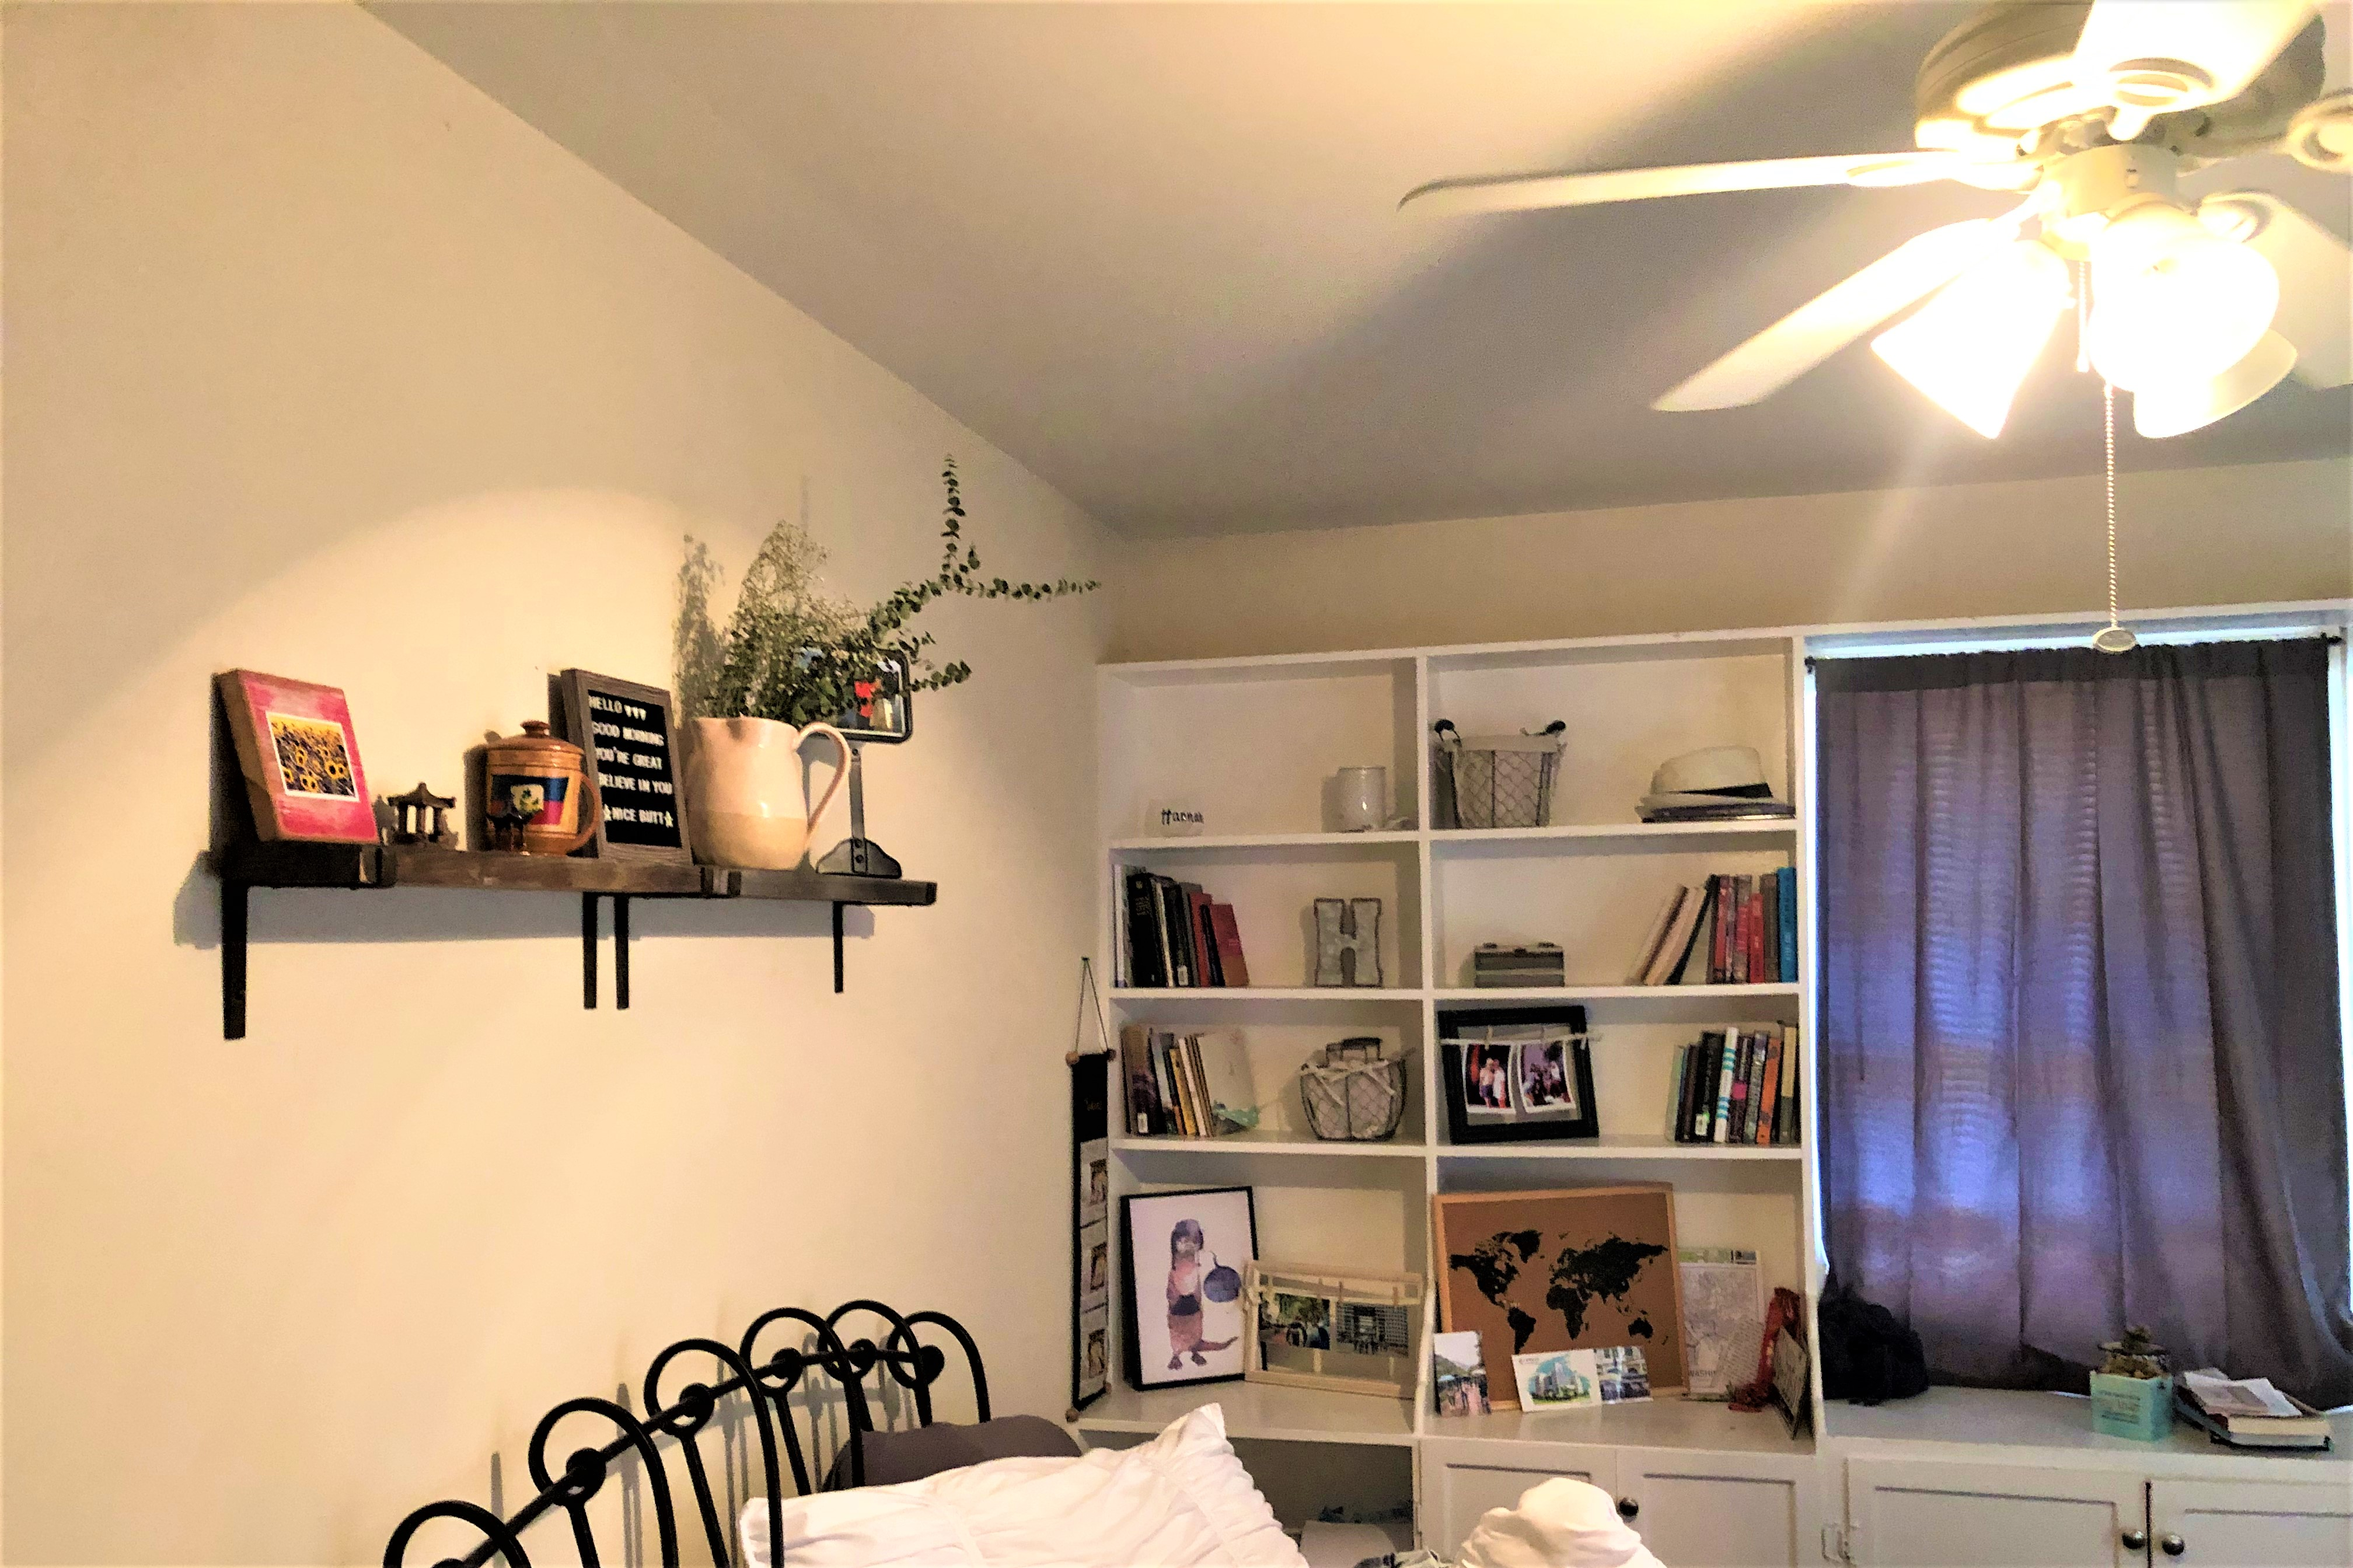 1101 South Kilbourne, Columbia, South Carolina 29205, 3 Bedrooms Bedrooms, ,2 BathroomsBathrooms,Home,For Rent,South Kilbourne,1092